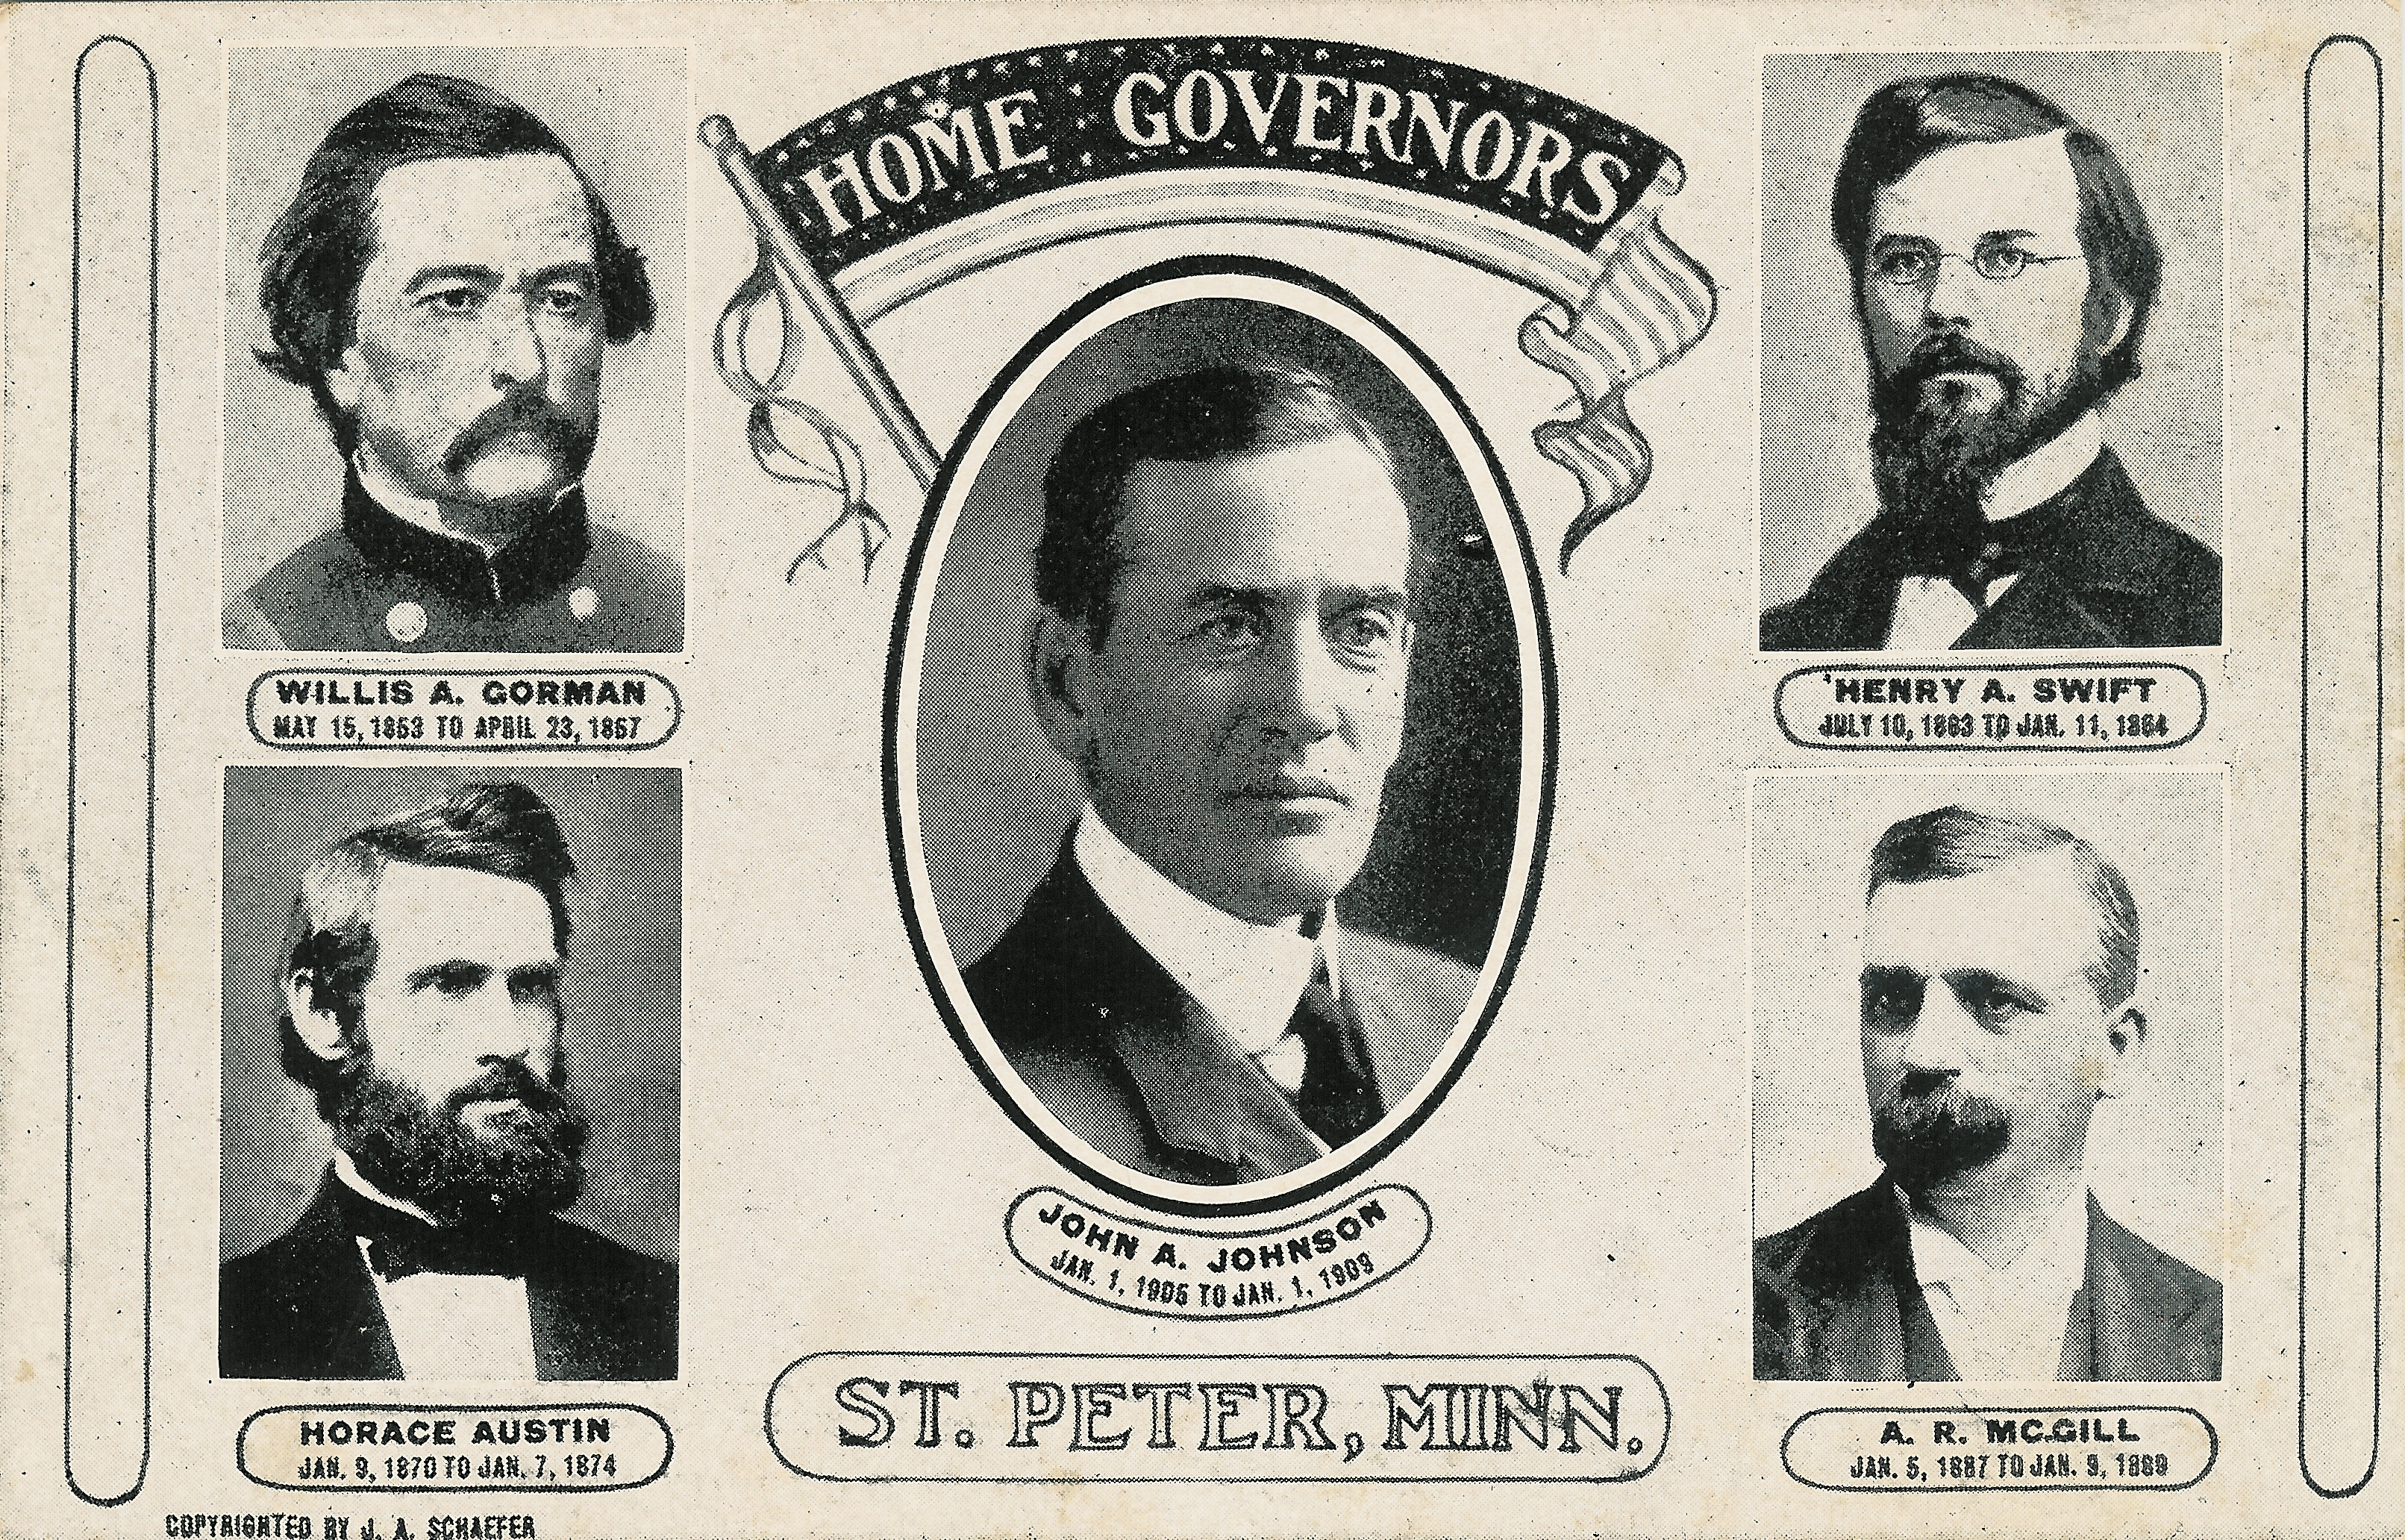 Five Governors from St. Peter, MN post card